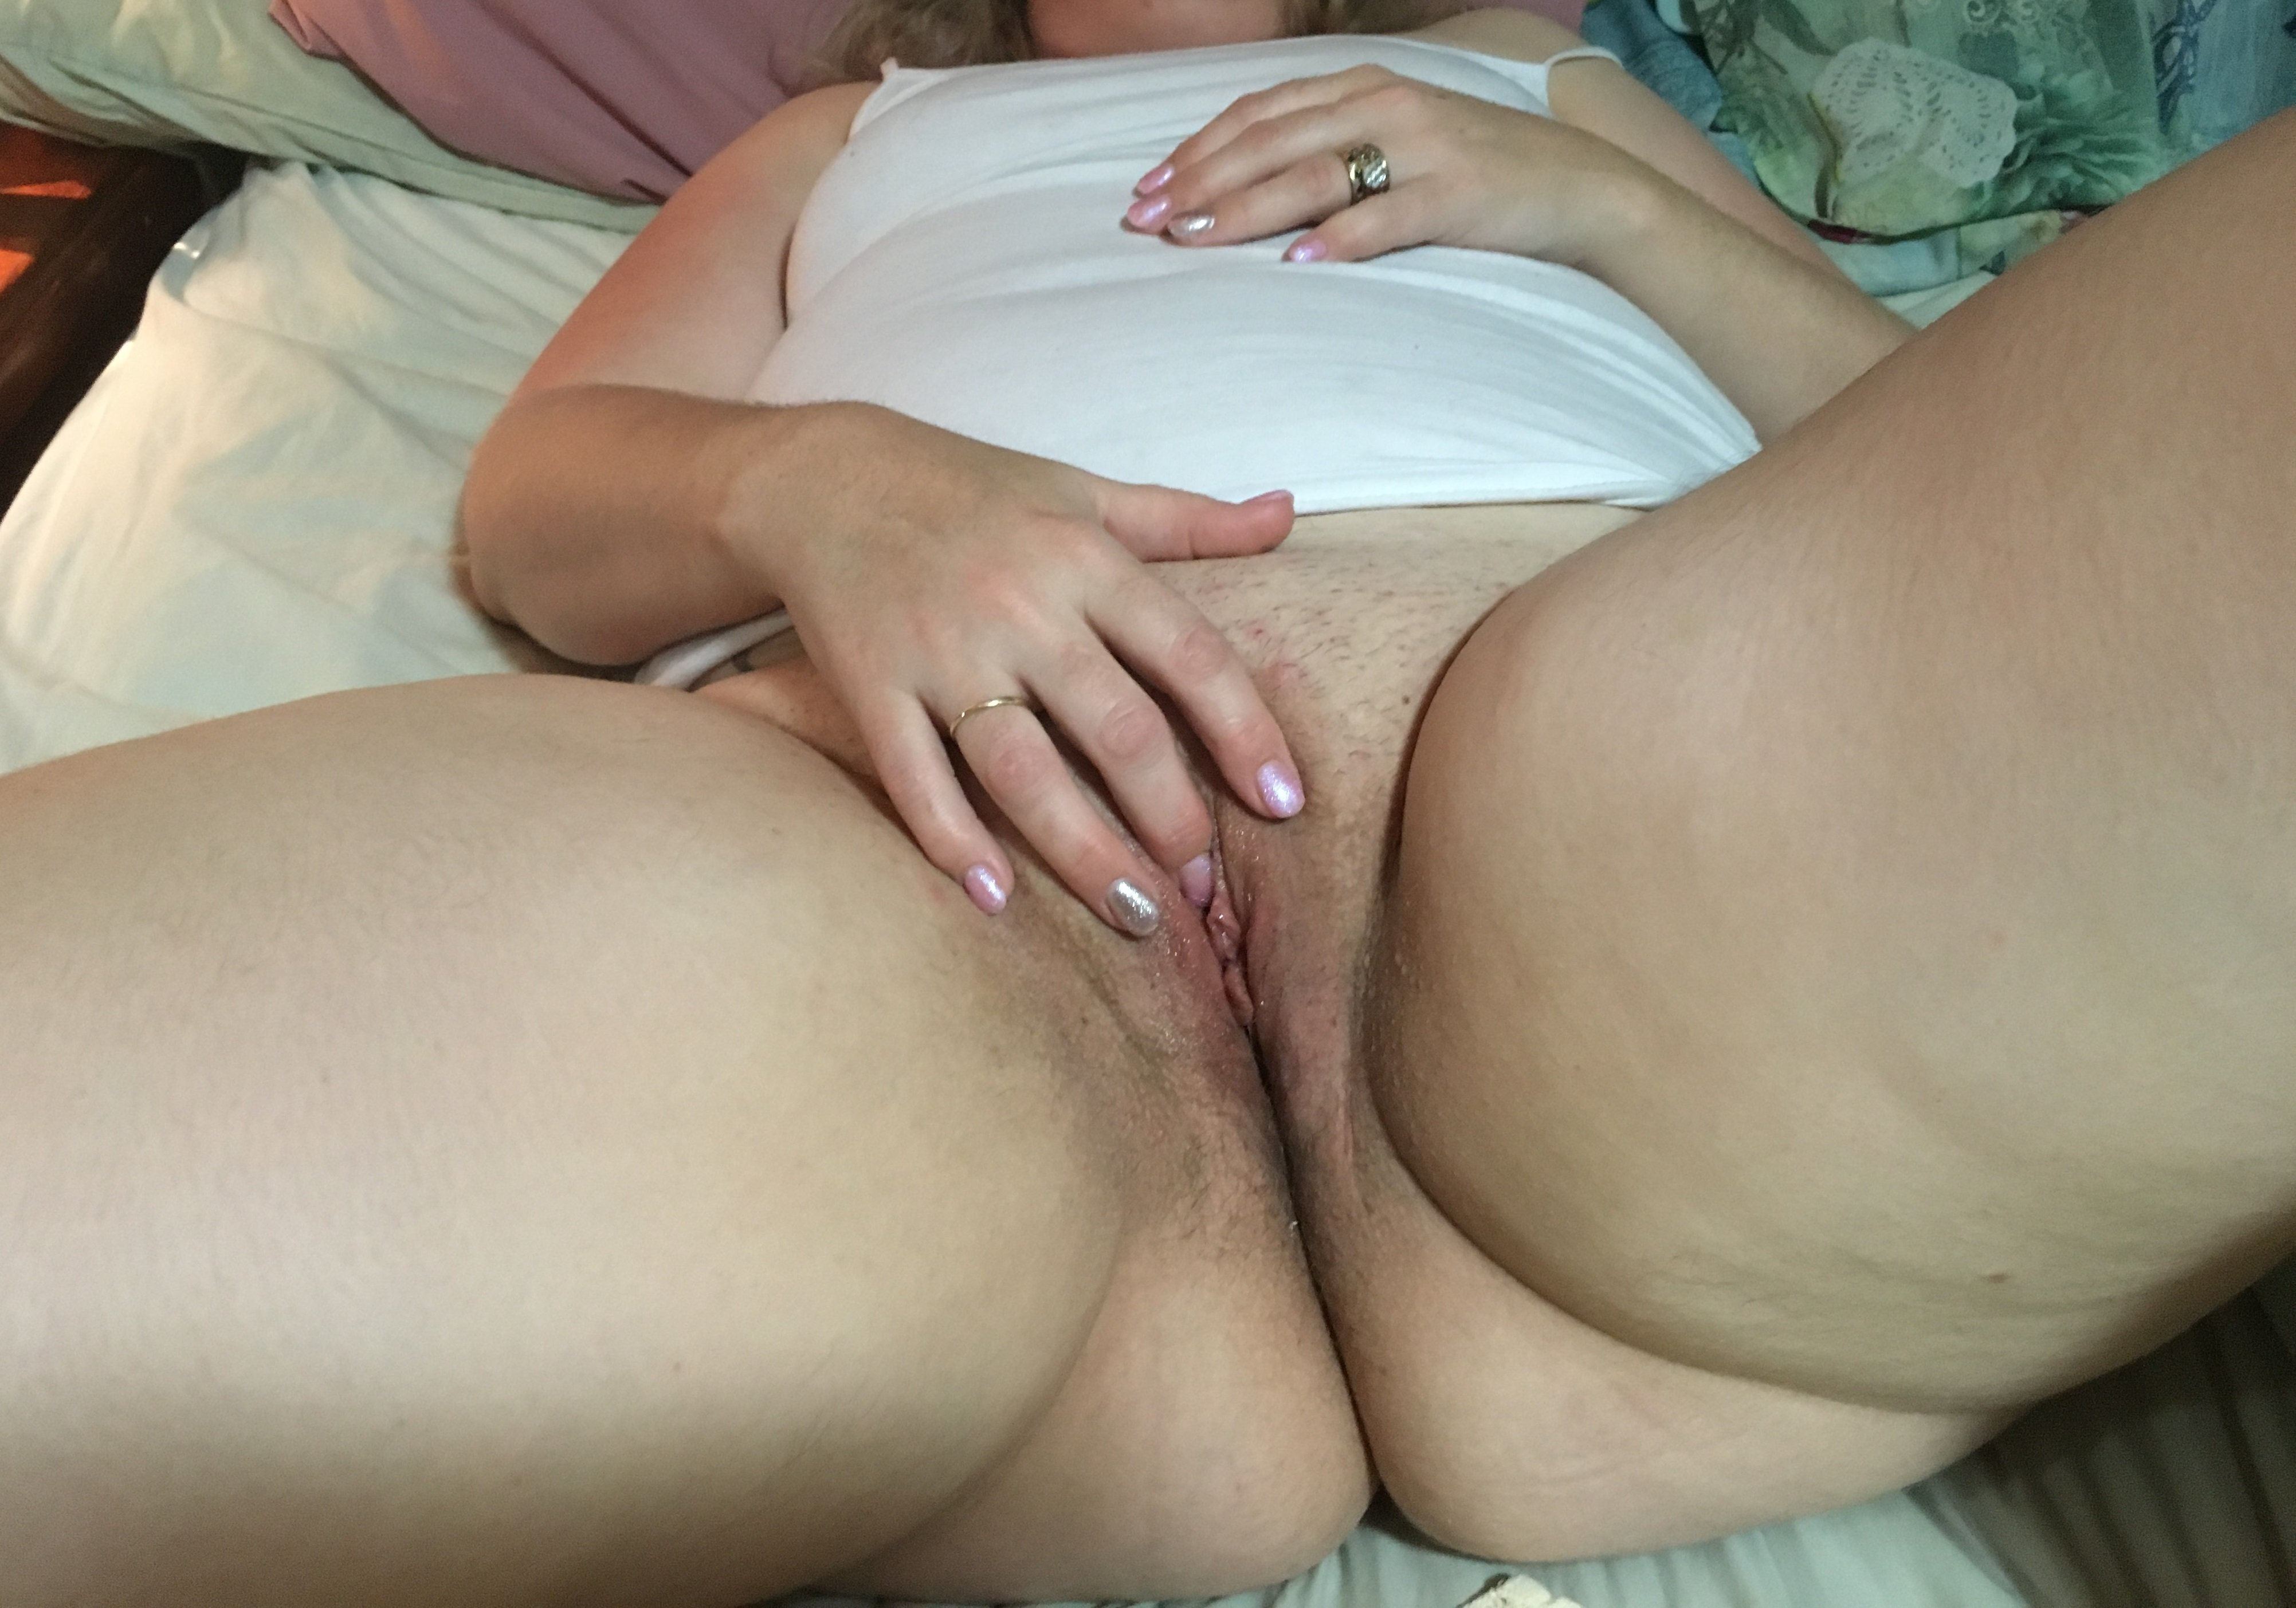 Amateur sex wild party tits submissive housewife porn